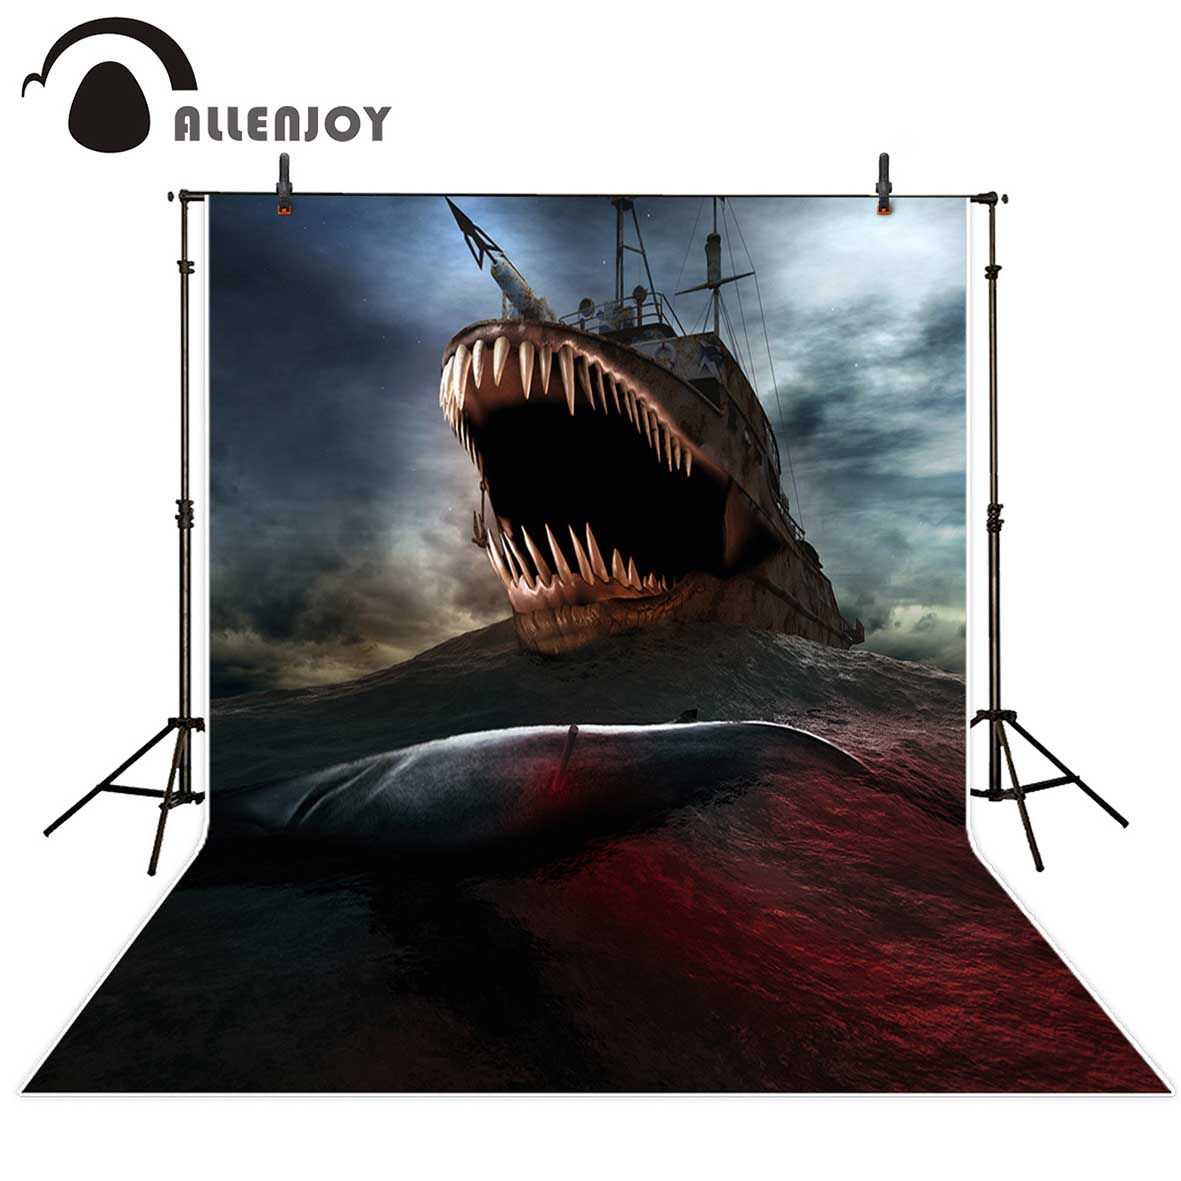 Allenjoy photography backdrops Strange giant fish boat scary background party decoration sea Background for photo studio 10pcs free shipping cs1 g red led pneumatic cylinder magnetic sensor reed switch dc ac 5v 240v